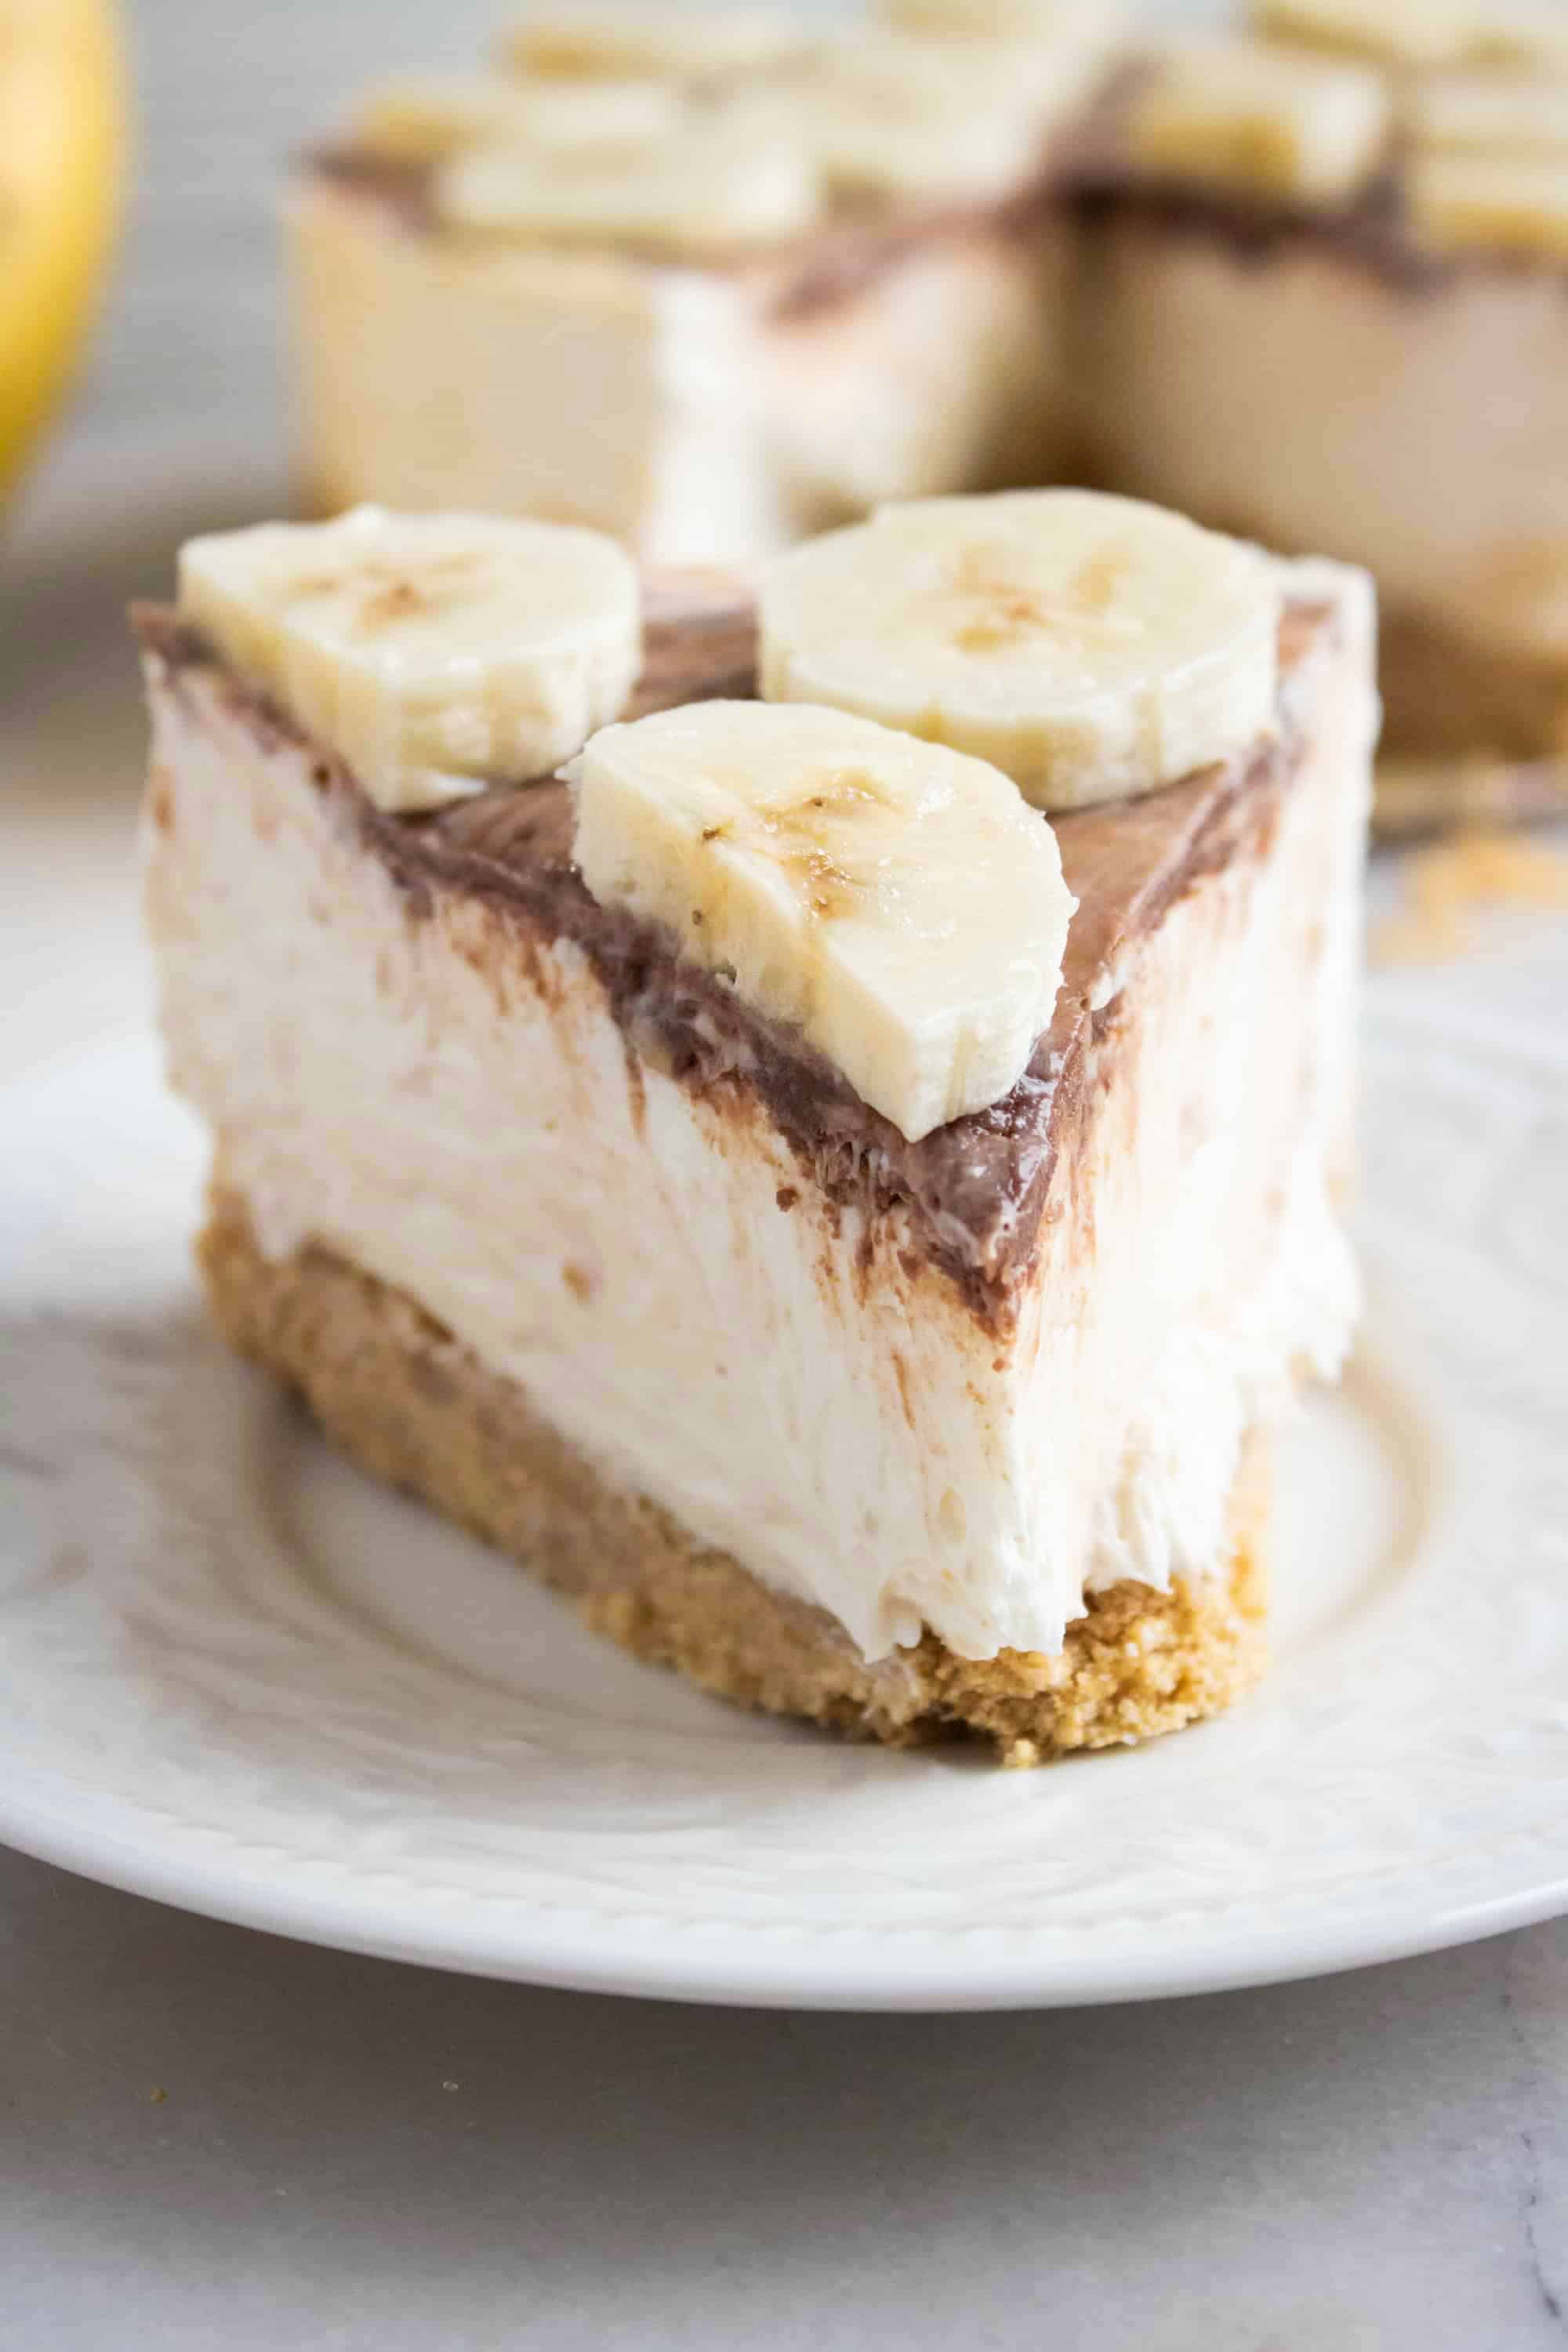 slice of no bake nutella cheesecake